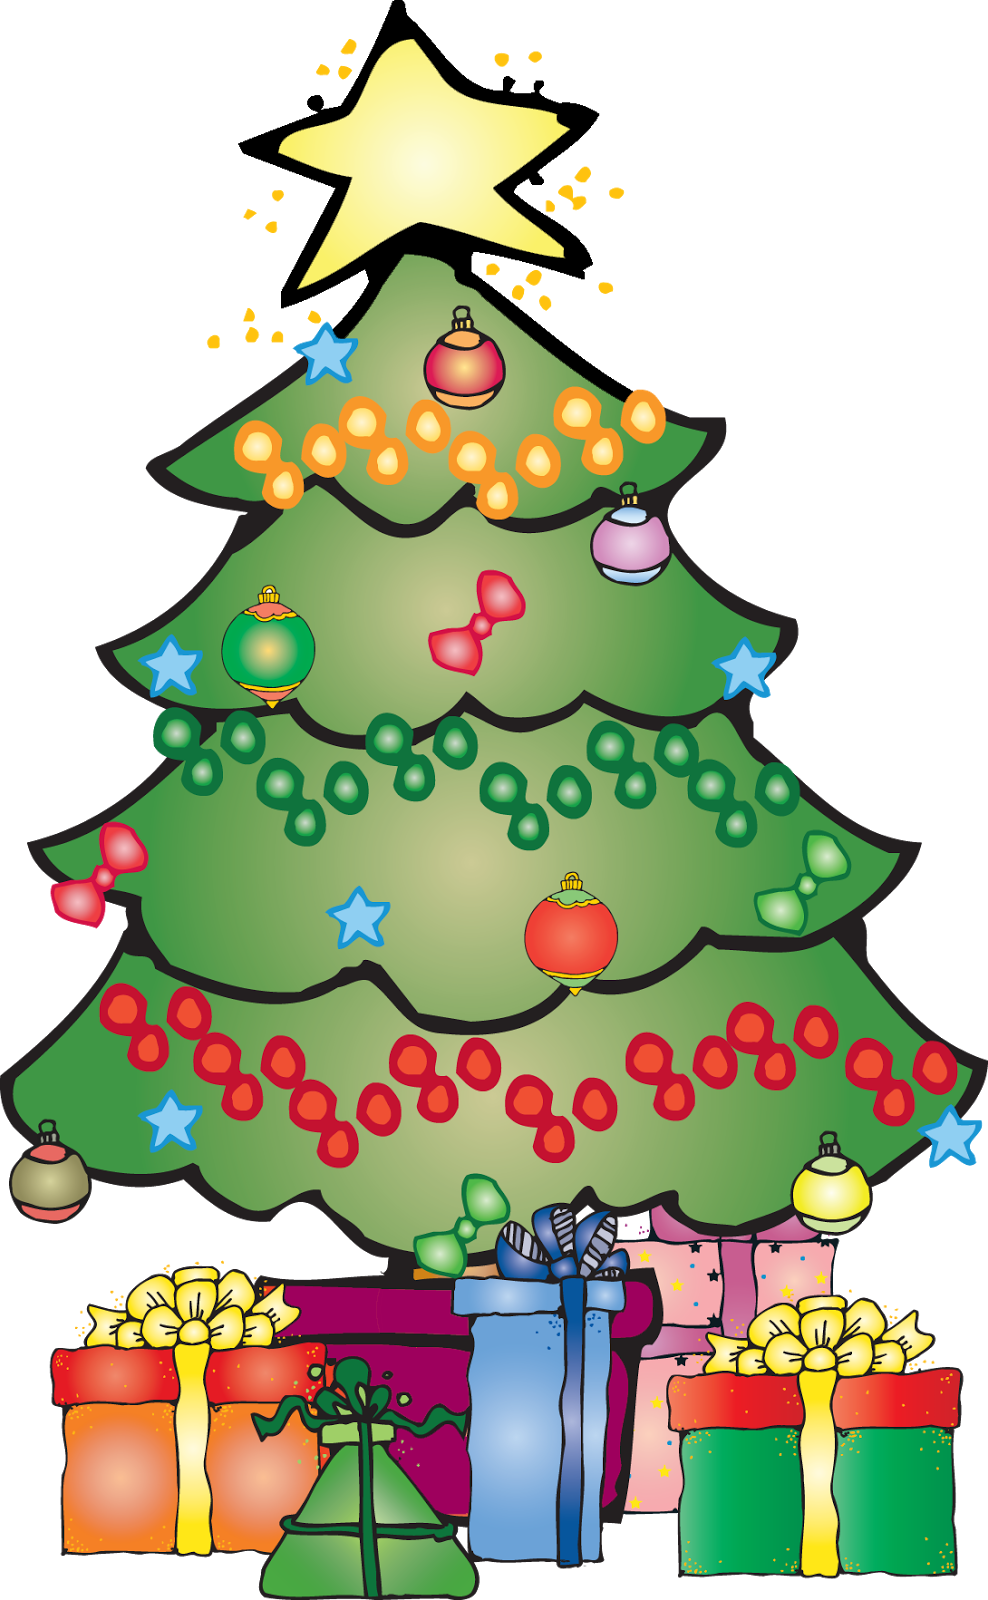 Children's christmas program clipart freeuse library melonheadz freebies - Αναζήτηση Google | Illustration | Pinterest ... freeuse library